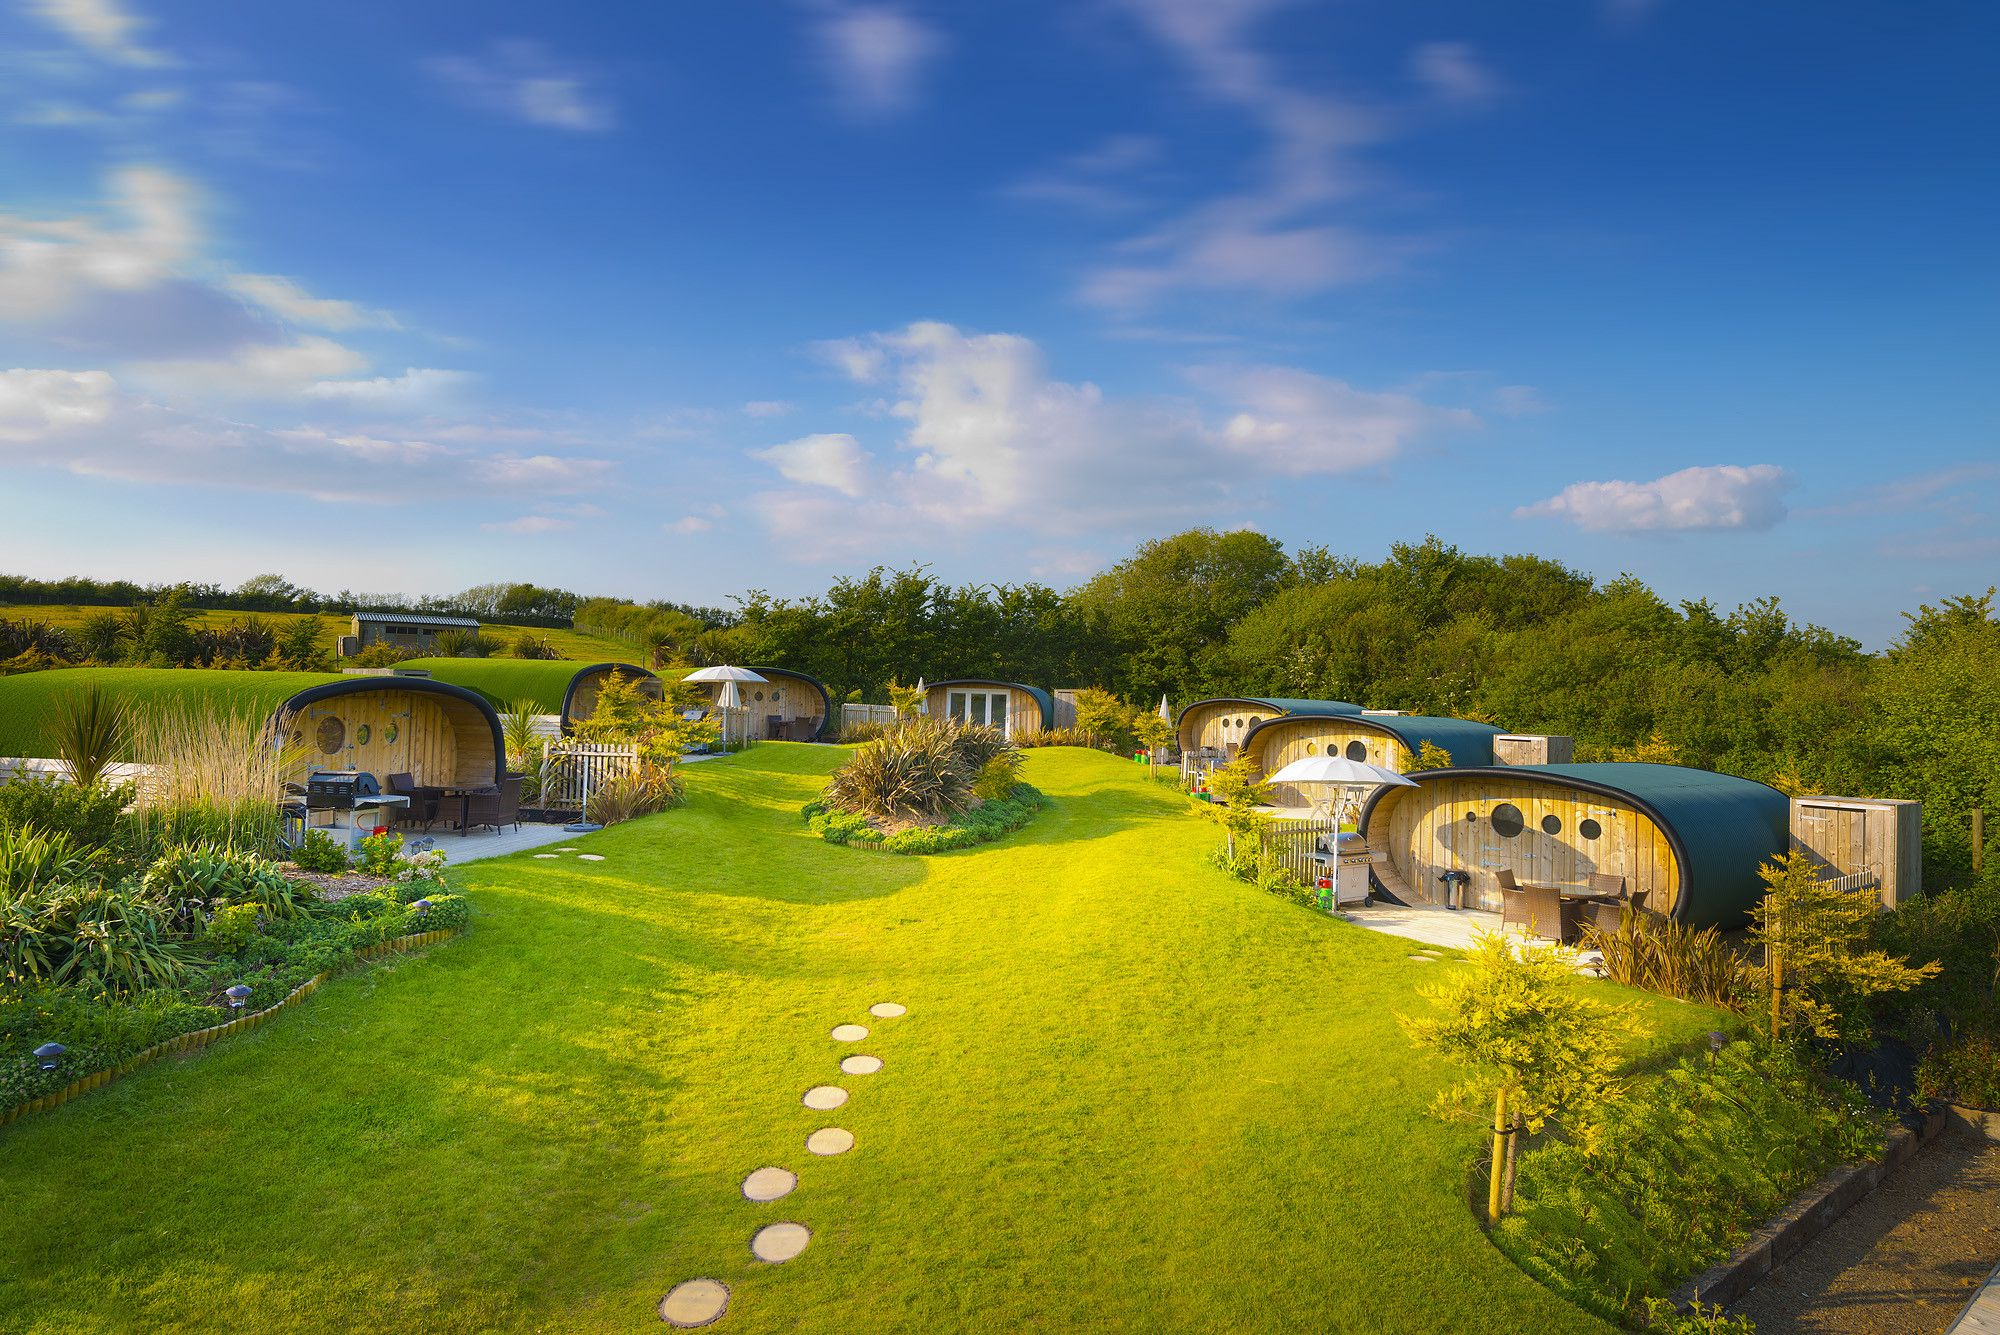 Bring your board and wetsuit—the rest is taken care of at this luxury Cornish glampsite.